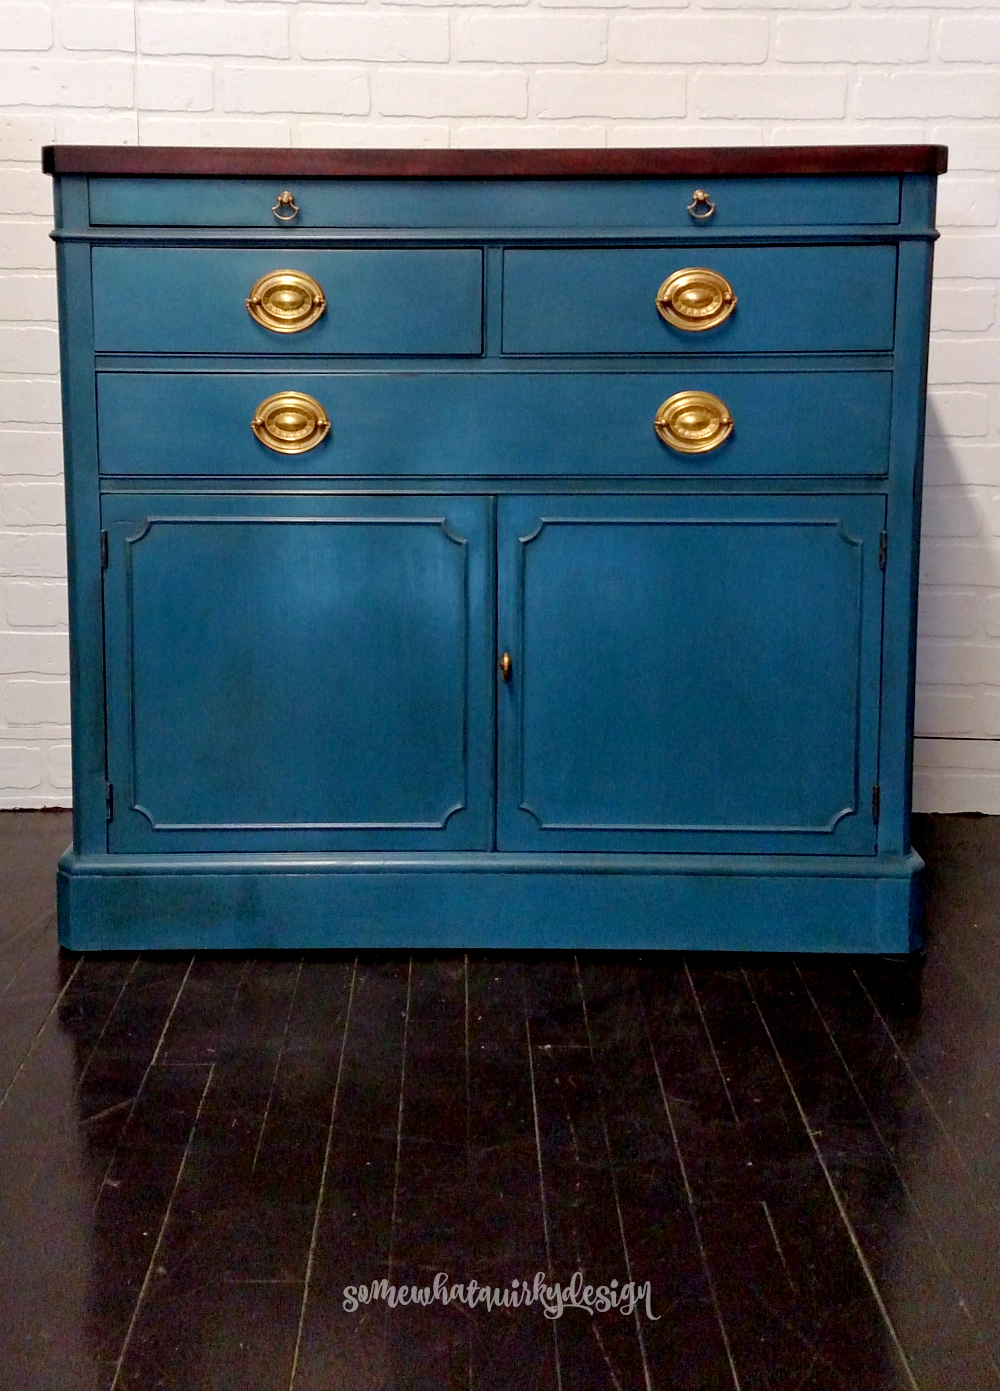 This Is A Great Piece Of Furniture Very High Quality There Wasn T Much Wrong With It But The Client Had Picture From Pinterest That Inspired Her To